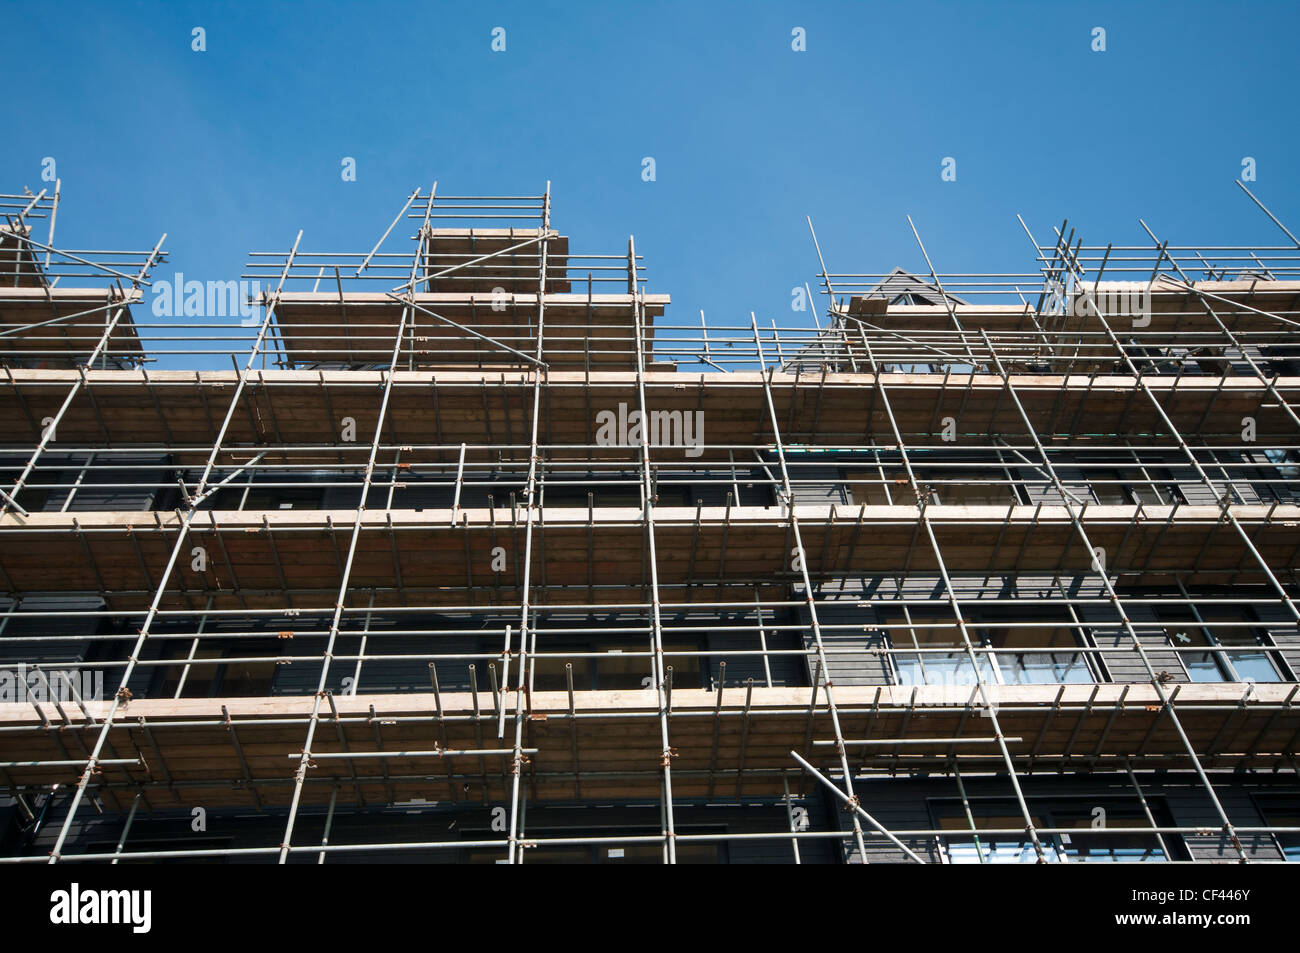 Scaffolding On A Building Scaffold Poles - Stock Image